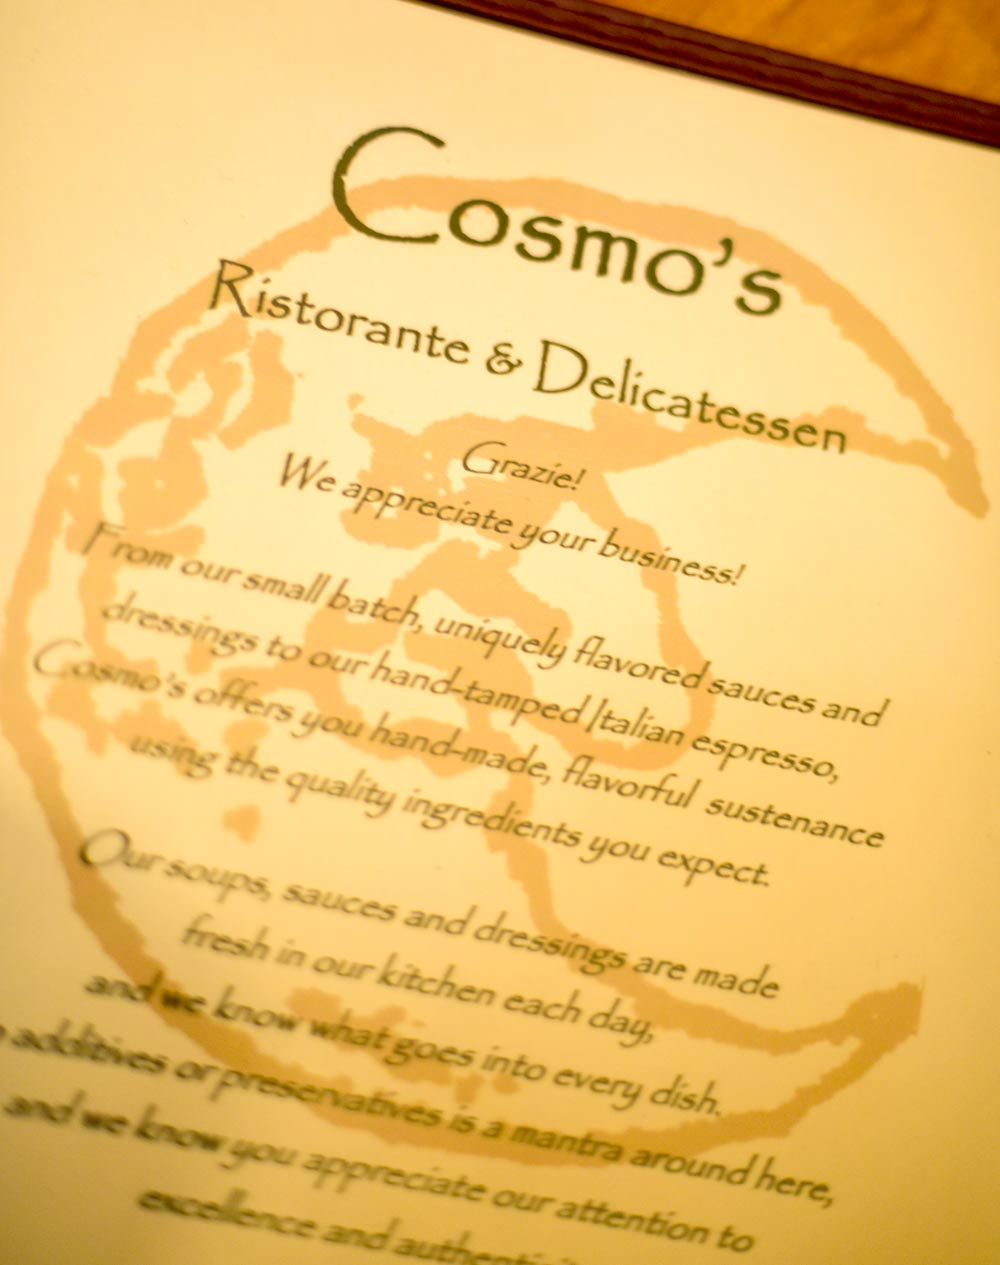 Wsmag Net Cosmo S Delicious Family Style Italian Food Featured Food Entertainment January 21 2019 Westsound Magazine